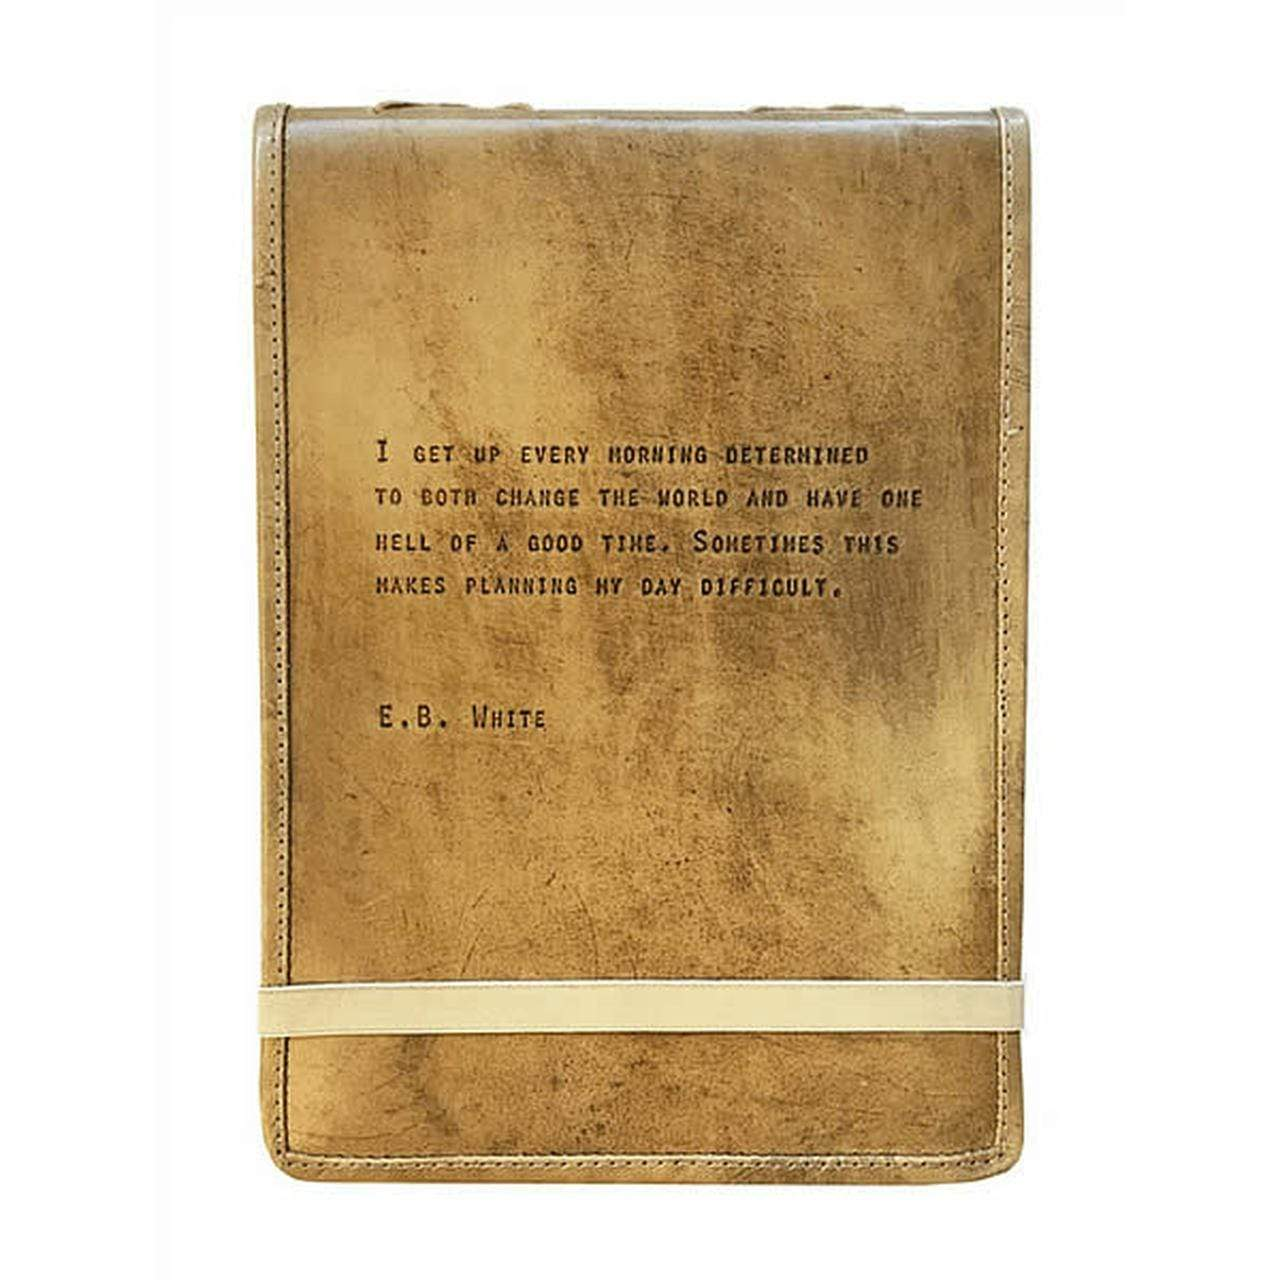 E.B. White Leather Journal Sugarboo & Co Books & Journals